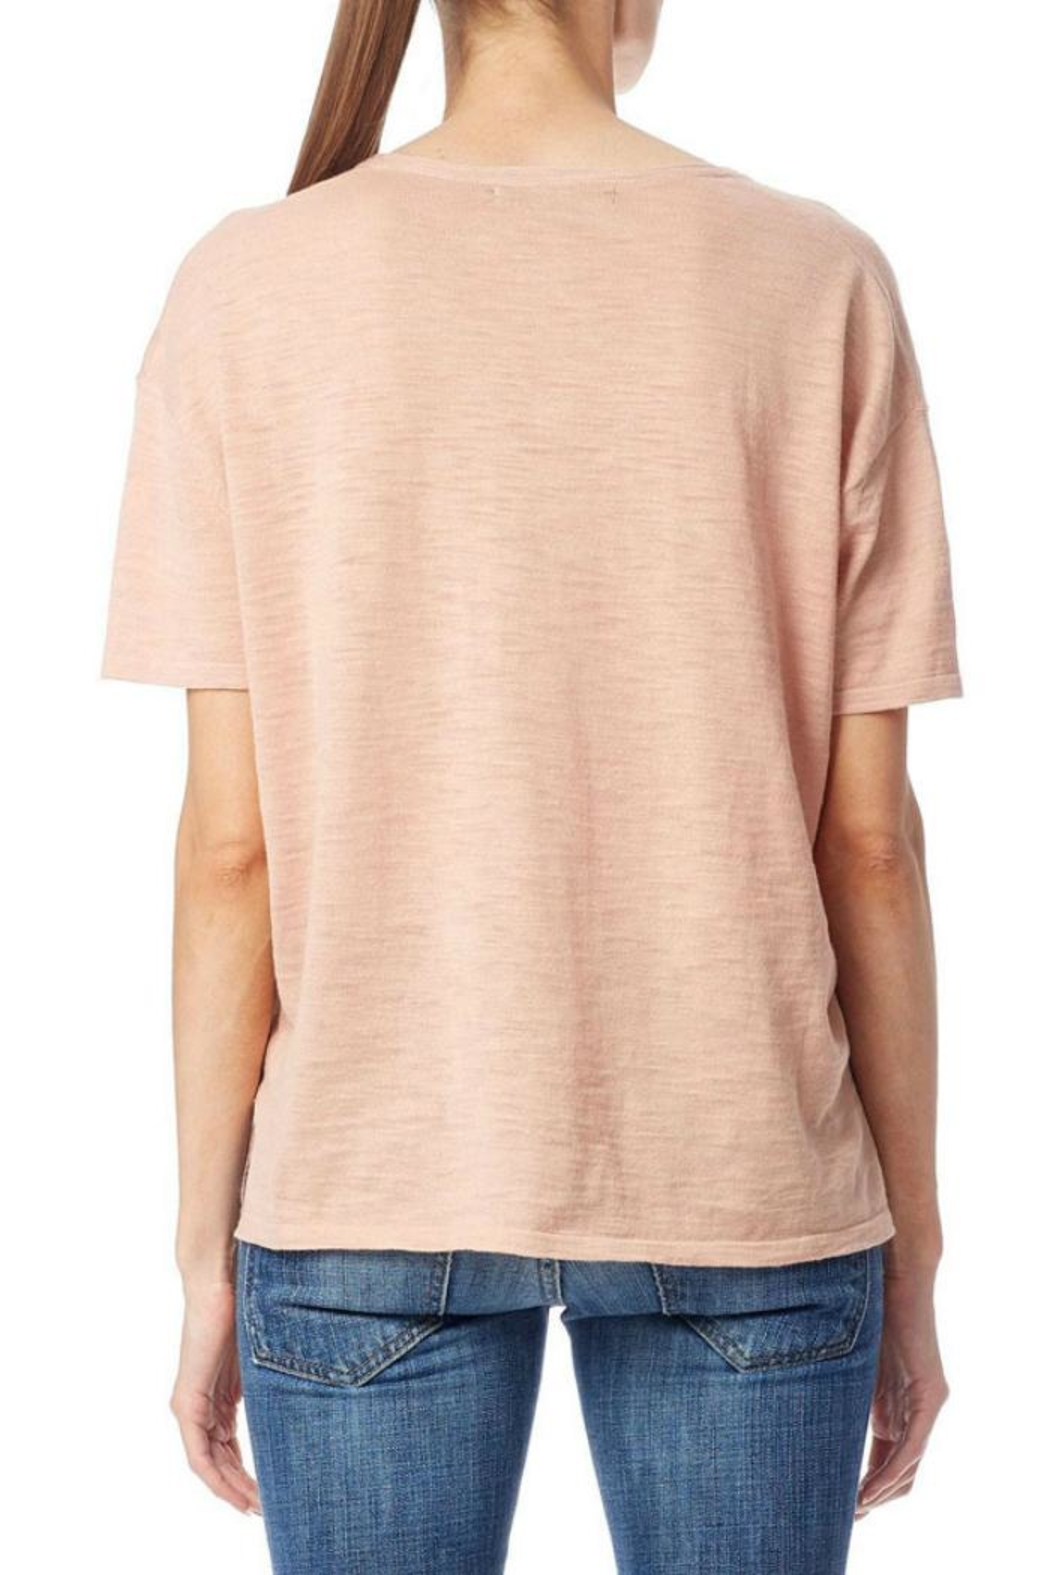 360 Cashmere Micky Top - Front Full Image